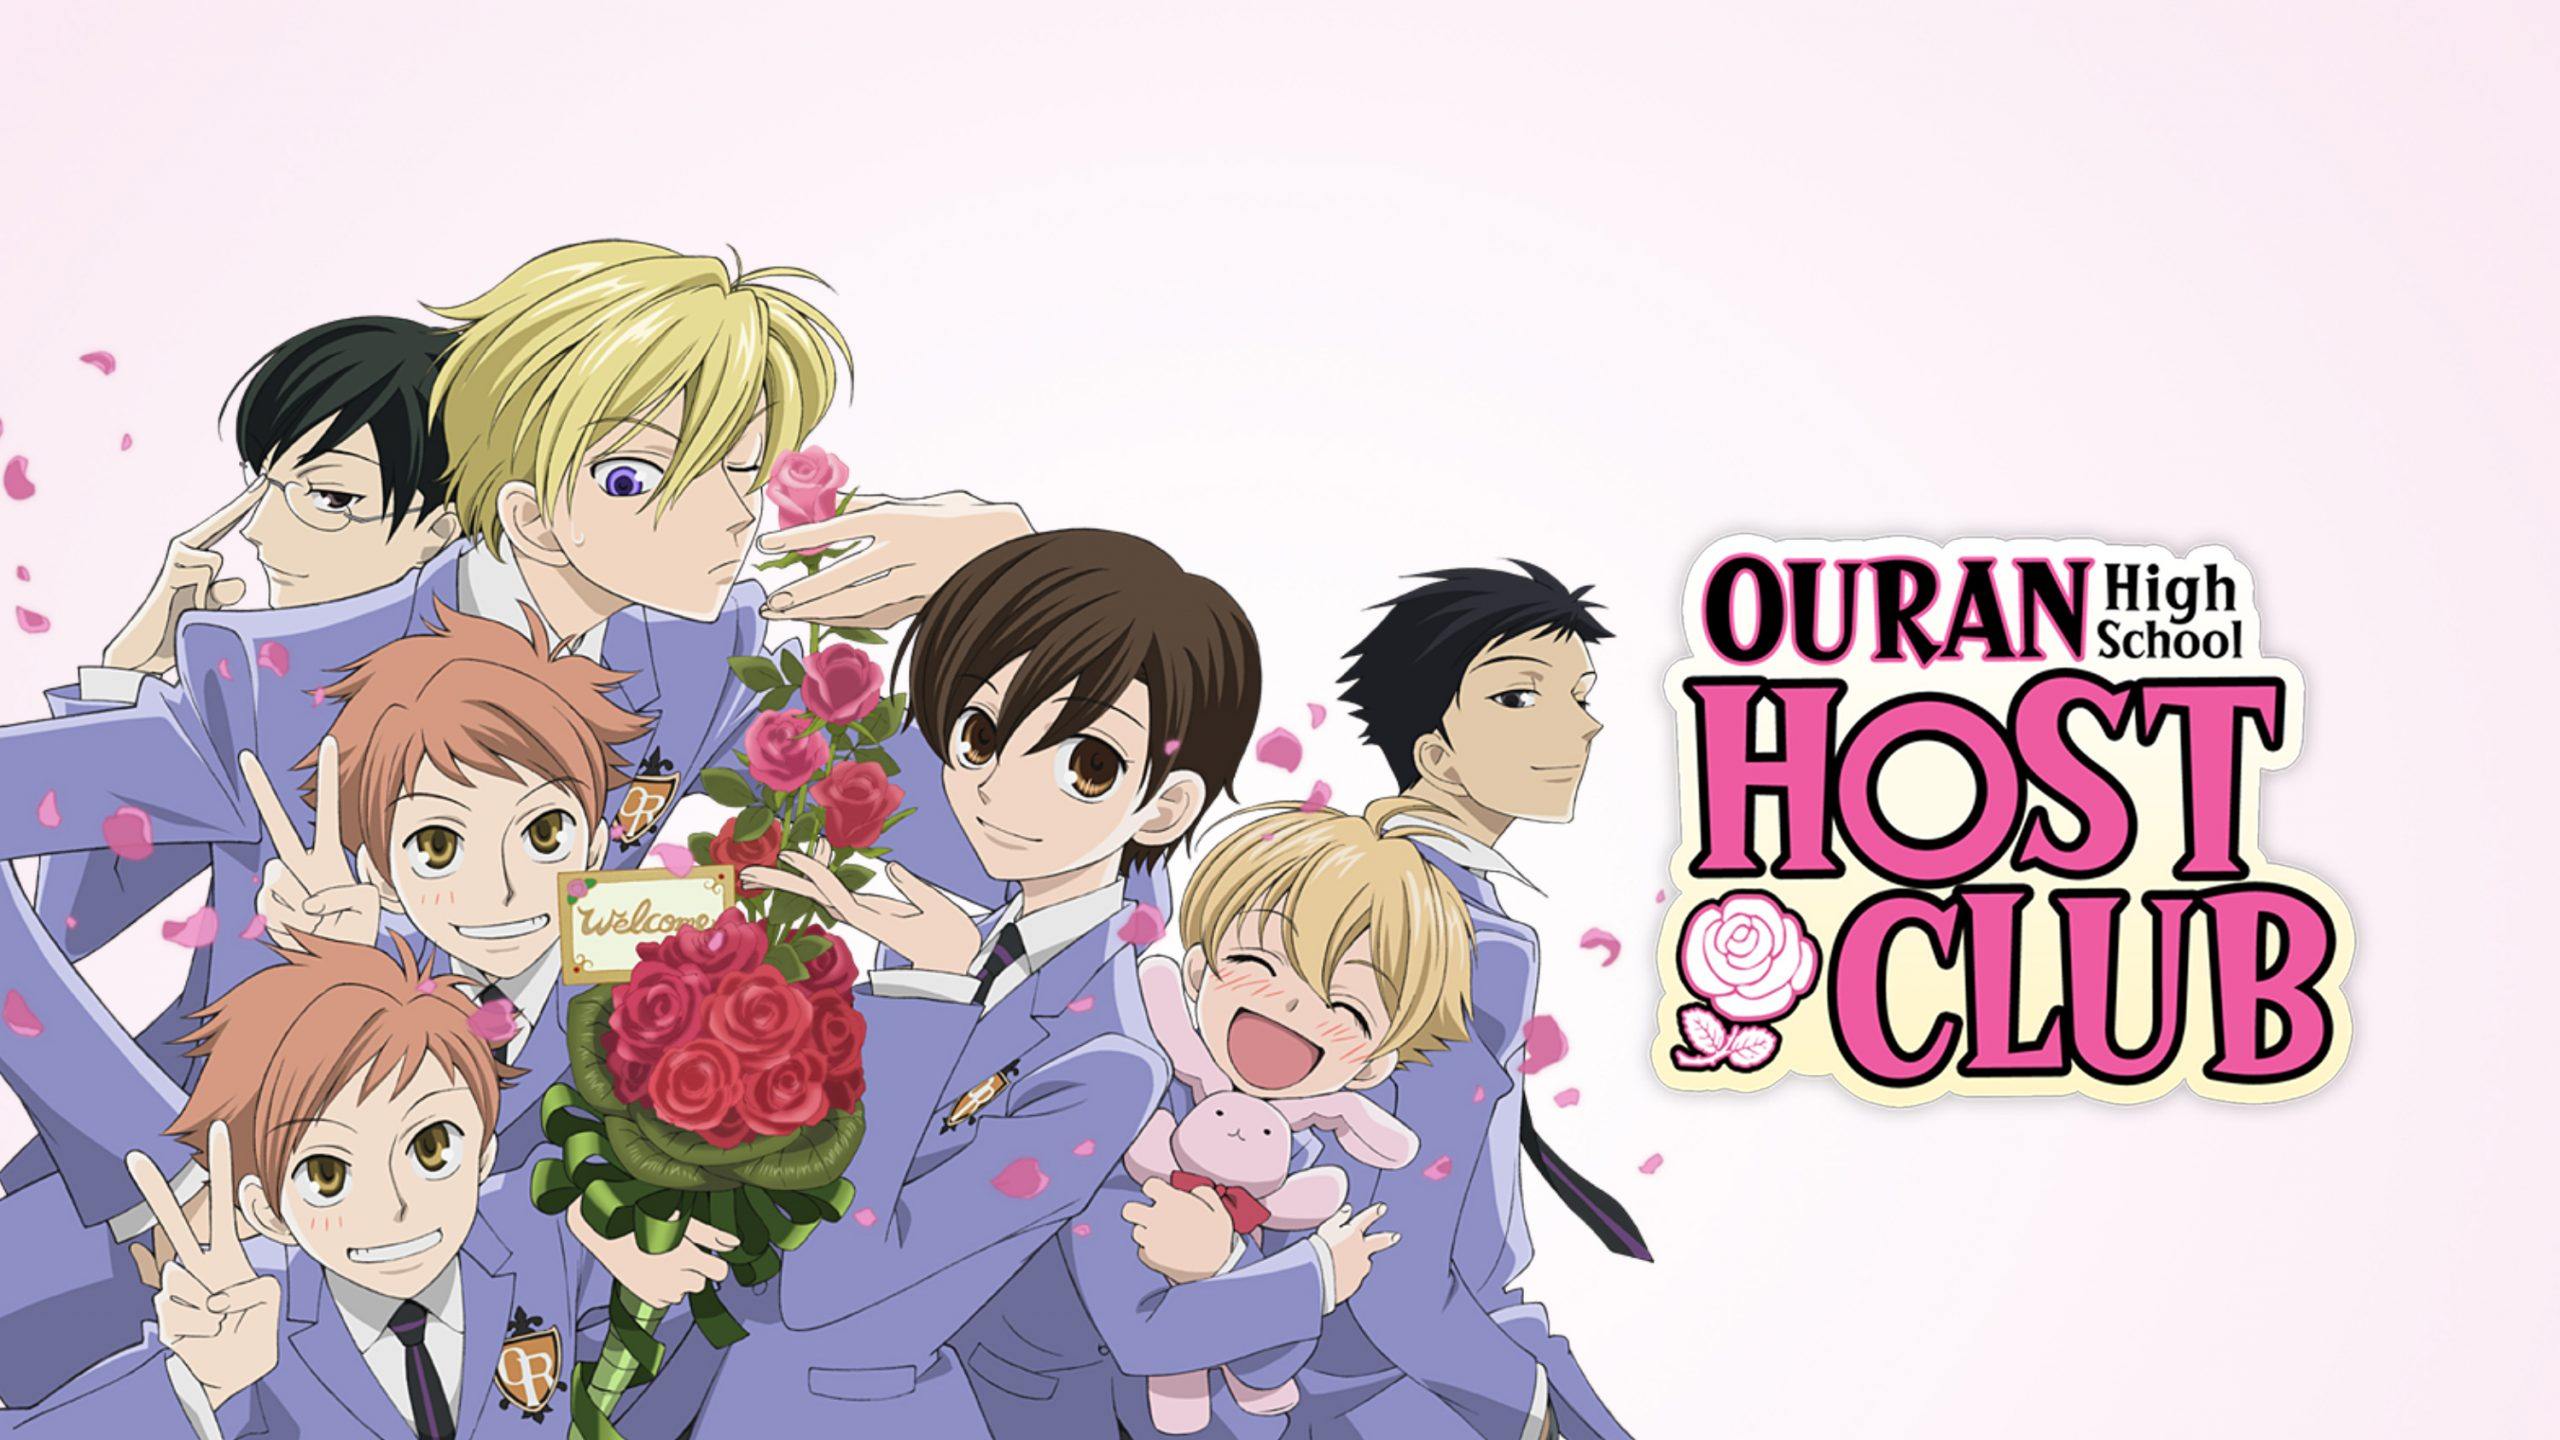 Ouran High School Host Club Season 2 release extended to 2021